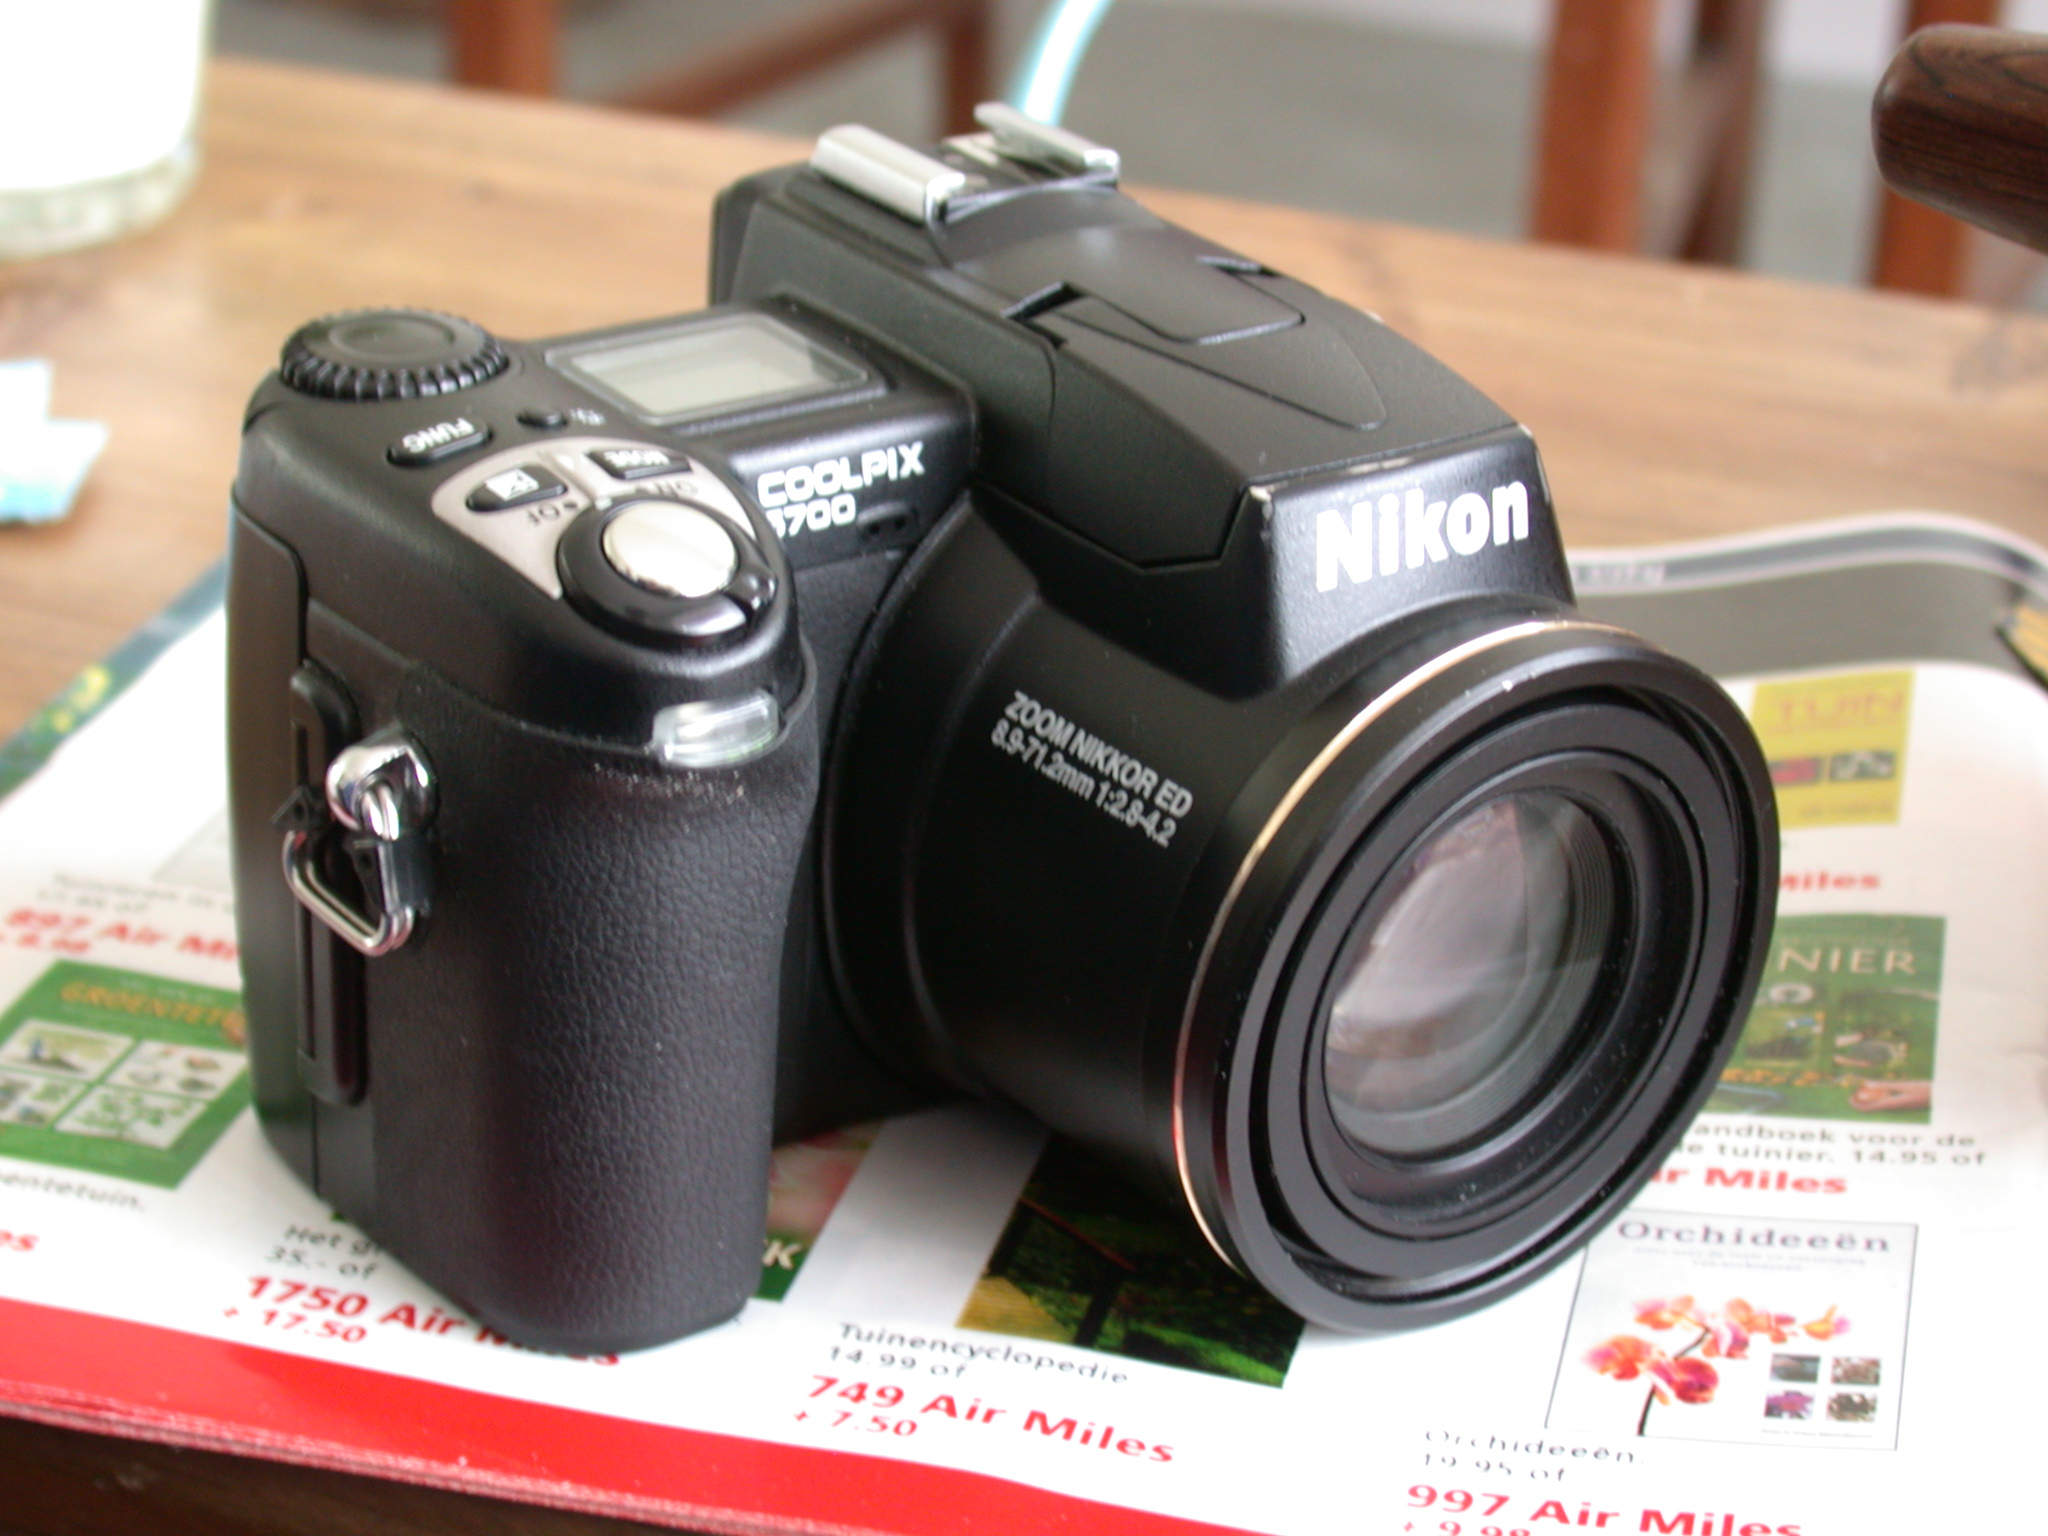 camera digital lens nikon coolpics 5700 shutter